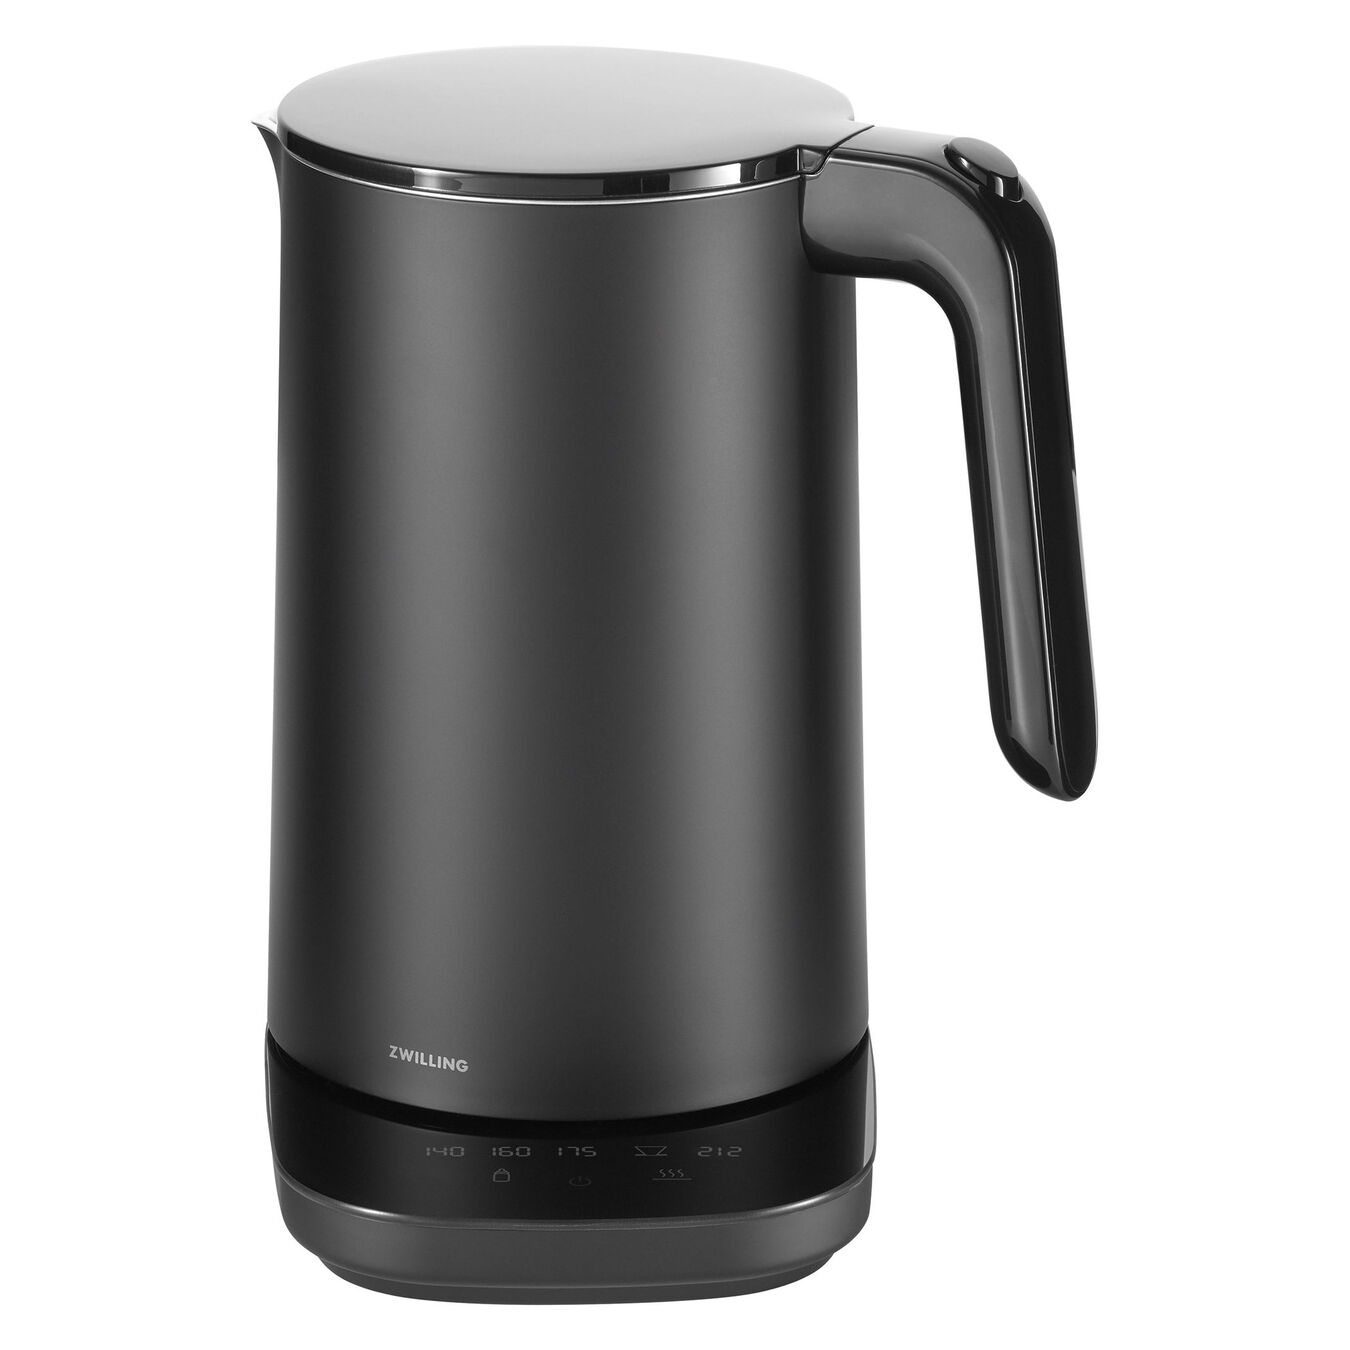 Cool Touch Kettle Pro - Black,,large 2